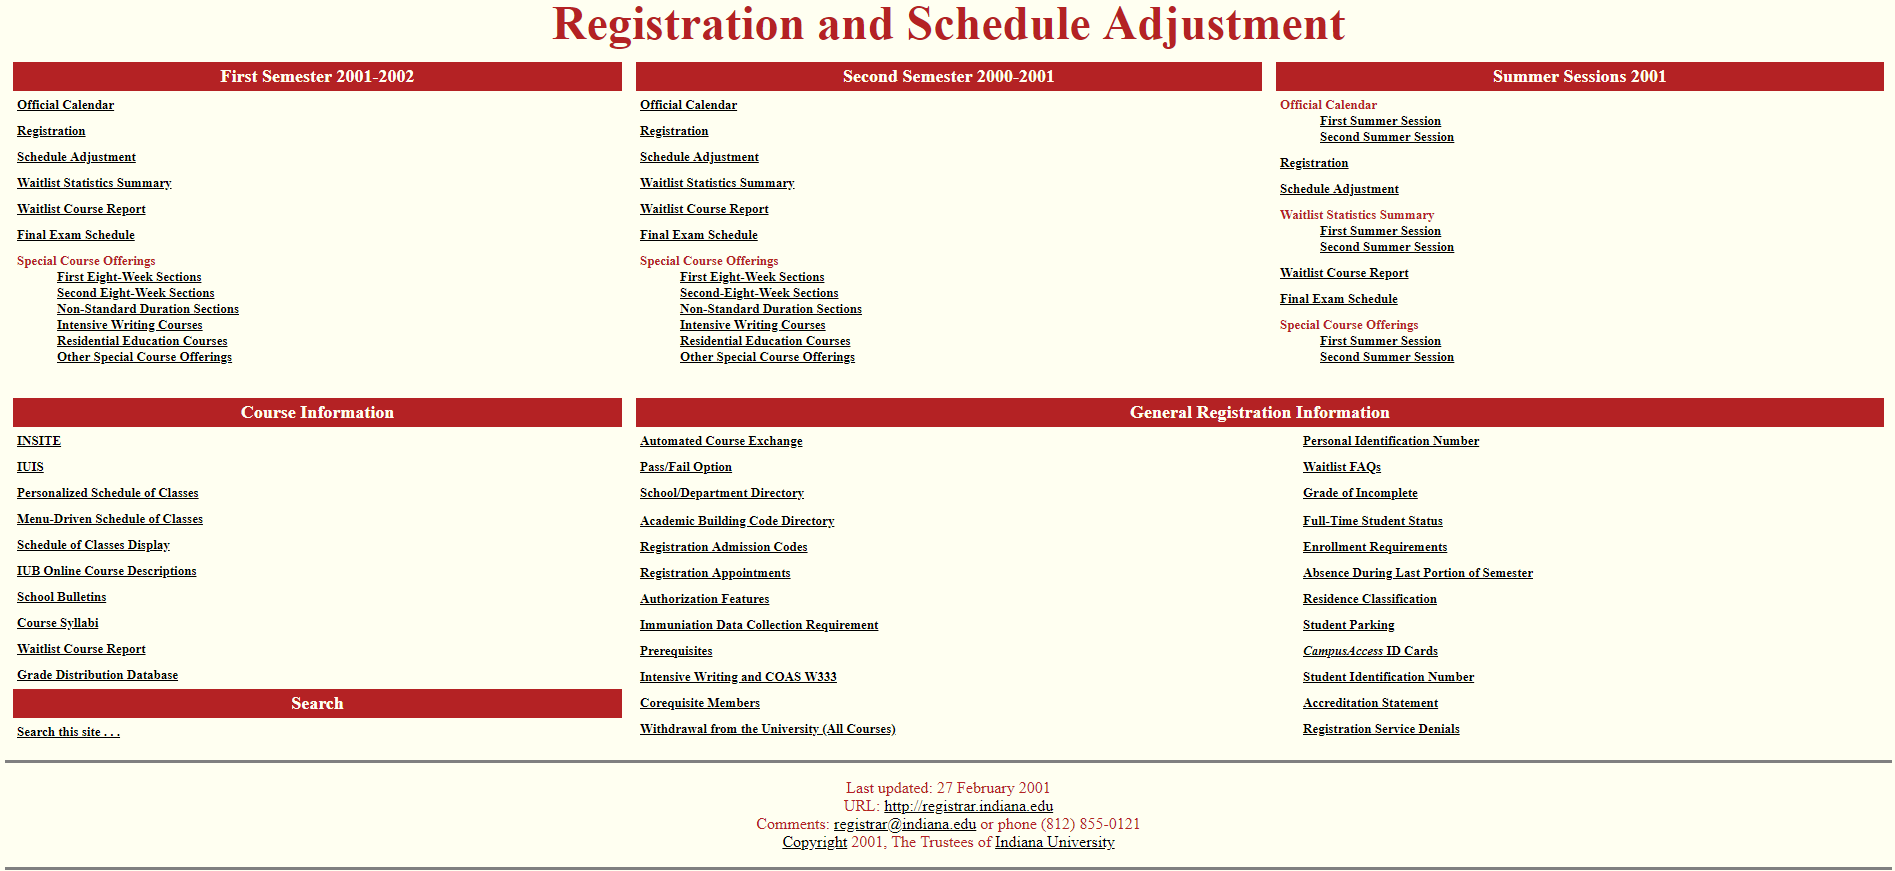 Screenshot of IU's first web-enable course interface